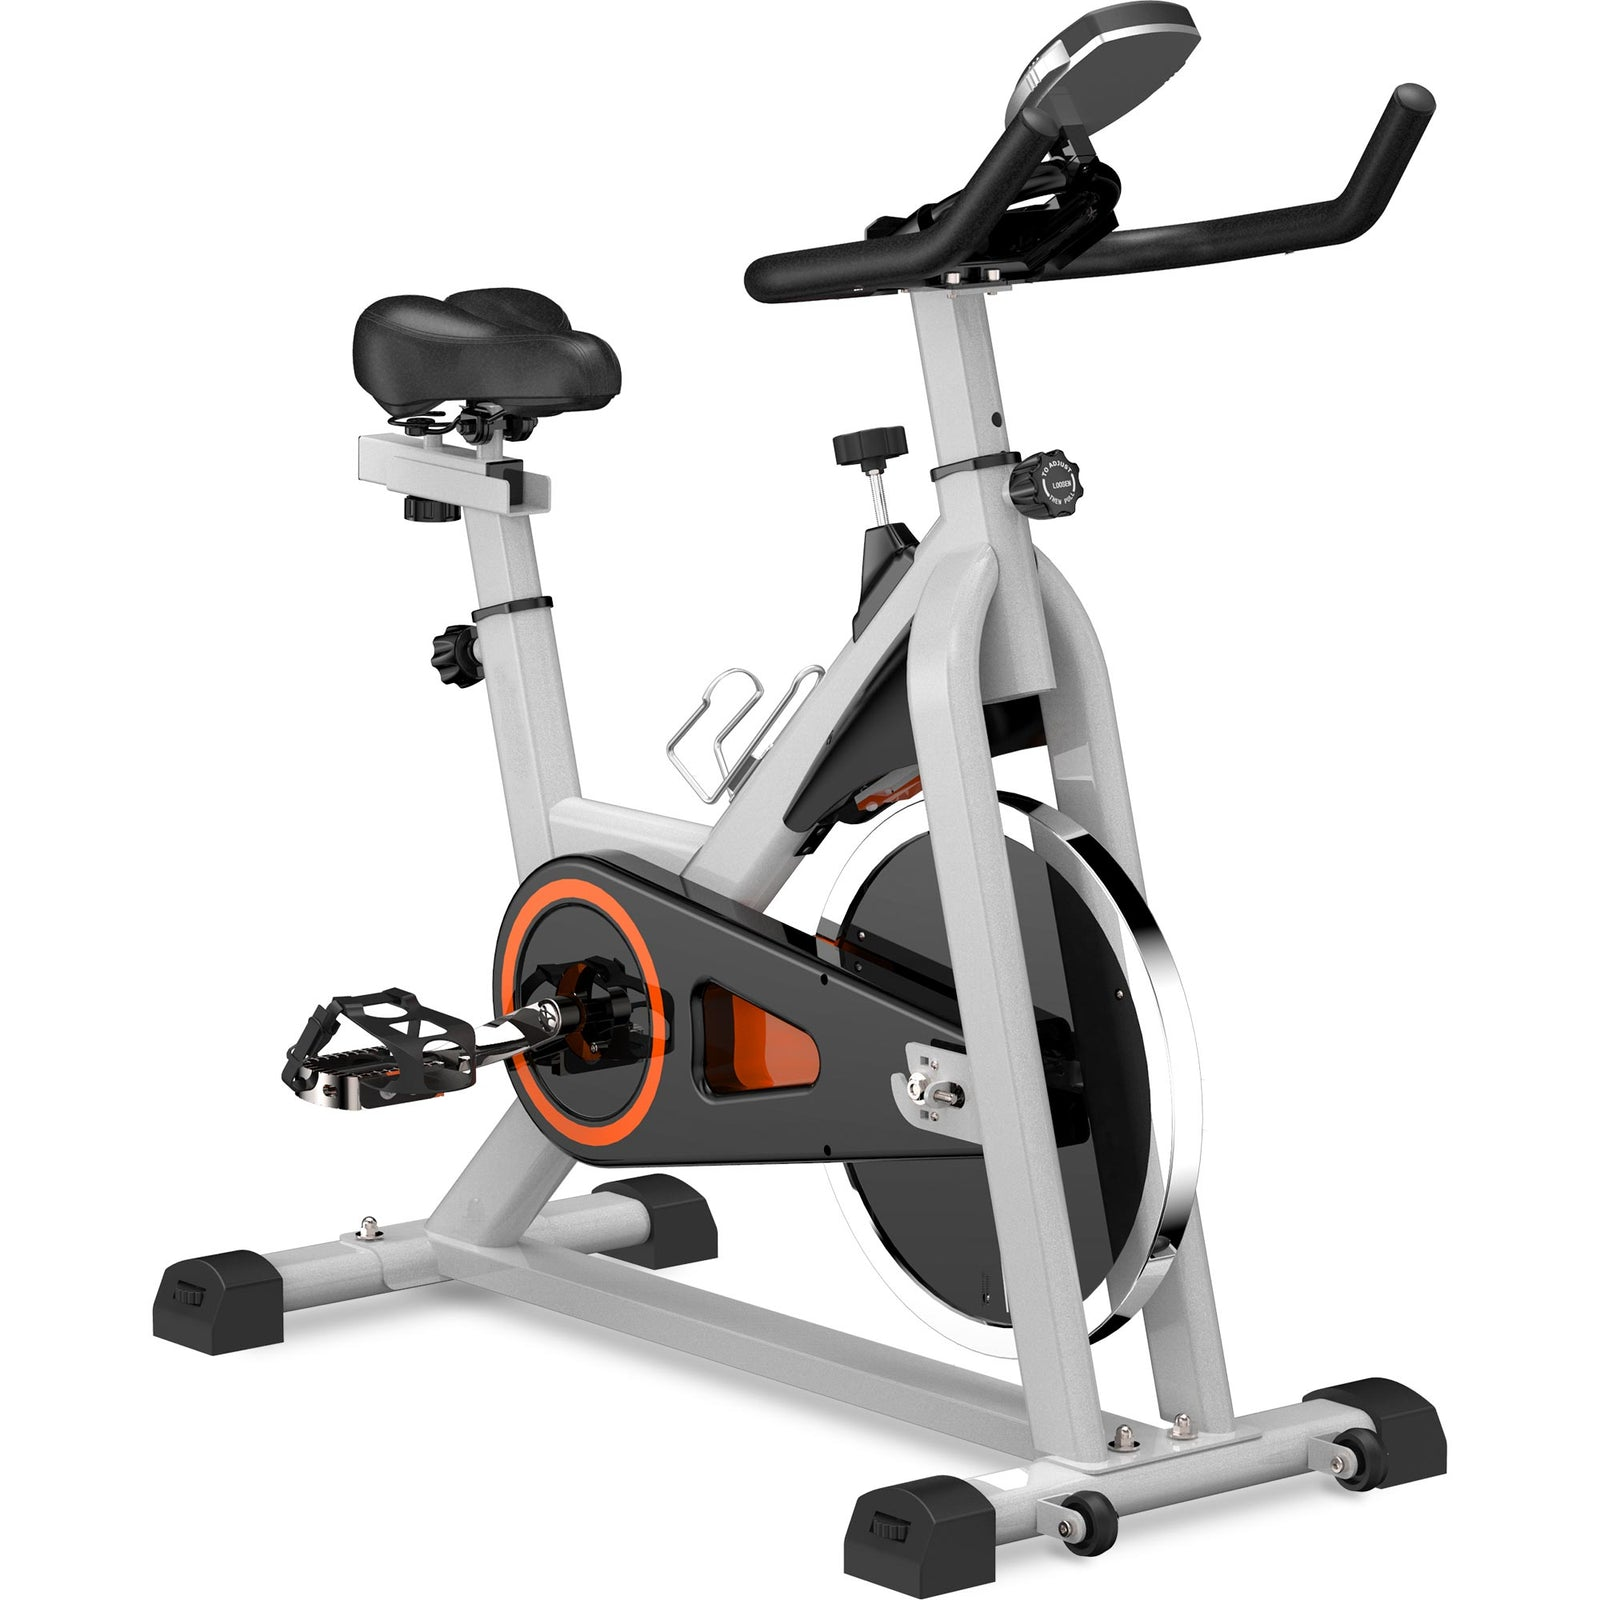 Gray Indoor Cycling Bike Stationary, Belt Driven Smooth Exercise Bike with Oversize Soft Saddle and LCD Monitor BH192377